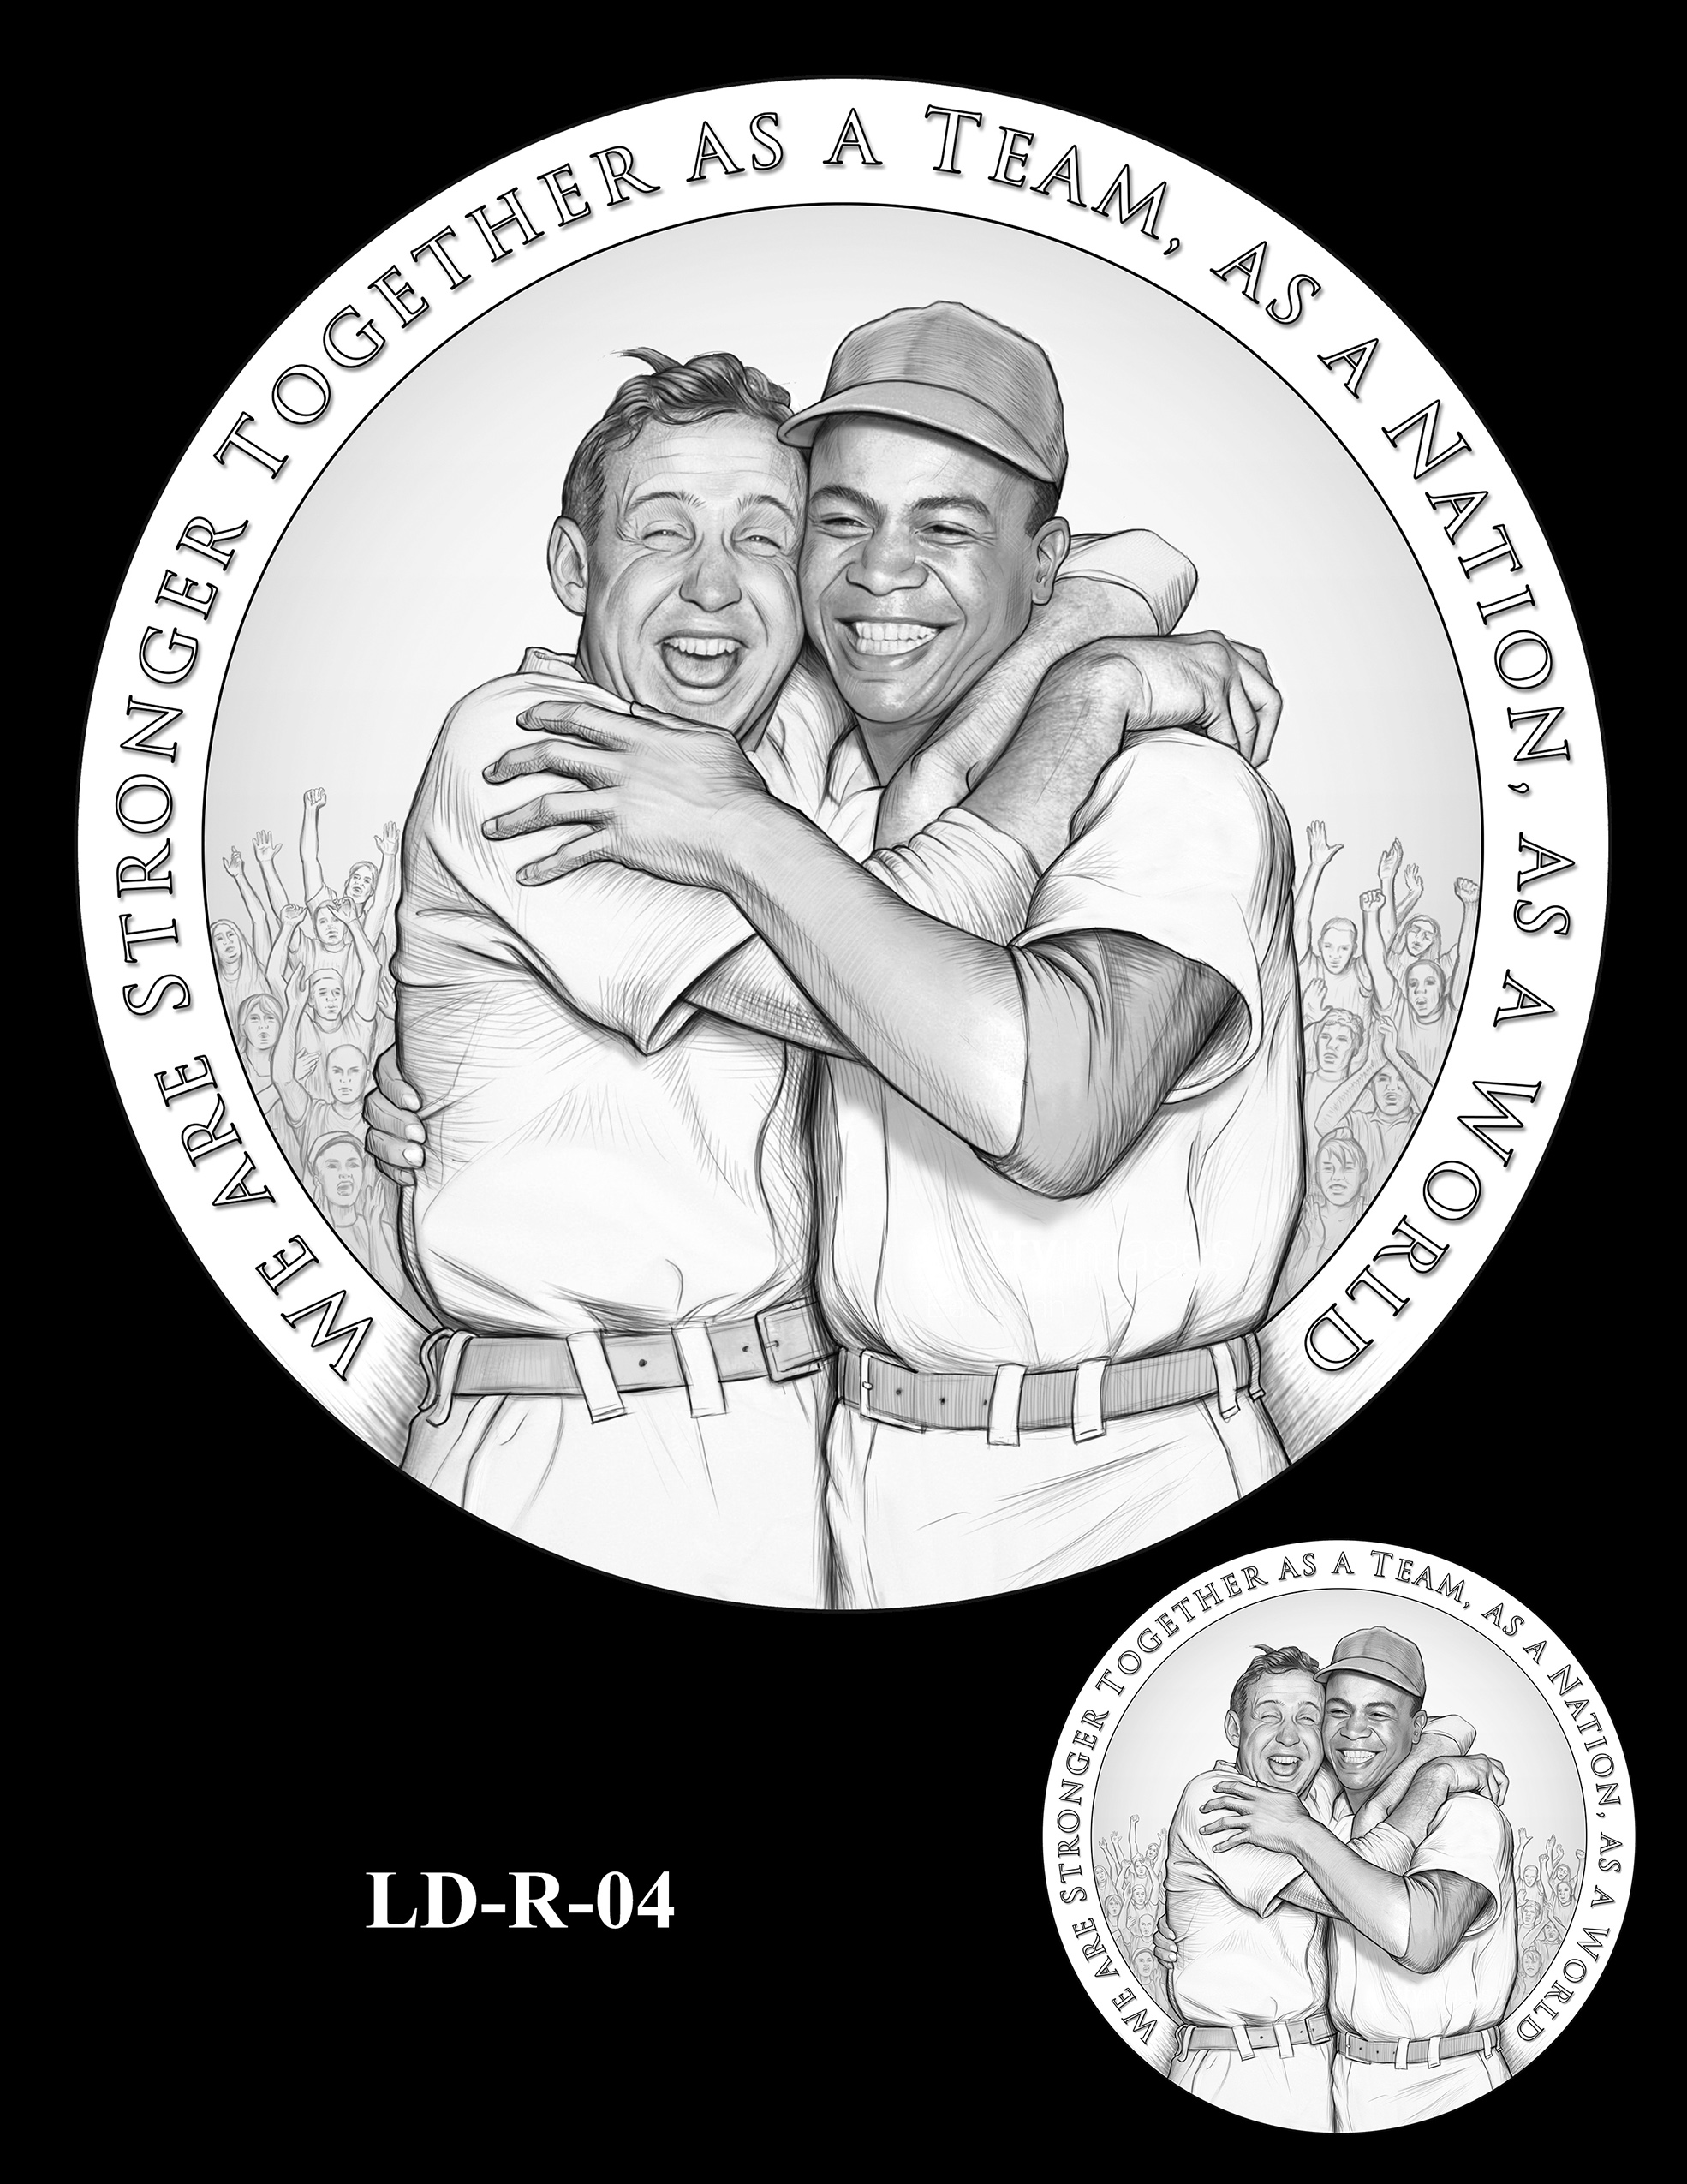 LD-R-04 -- Larry Doby Congressional Gold Medal